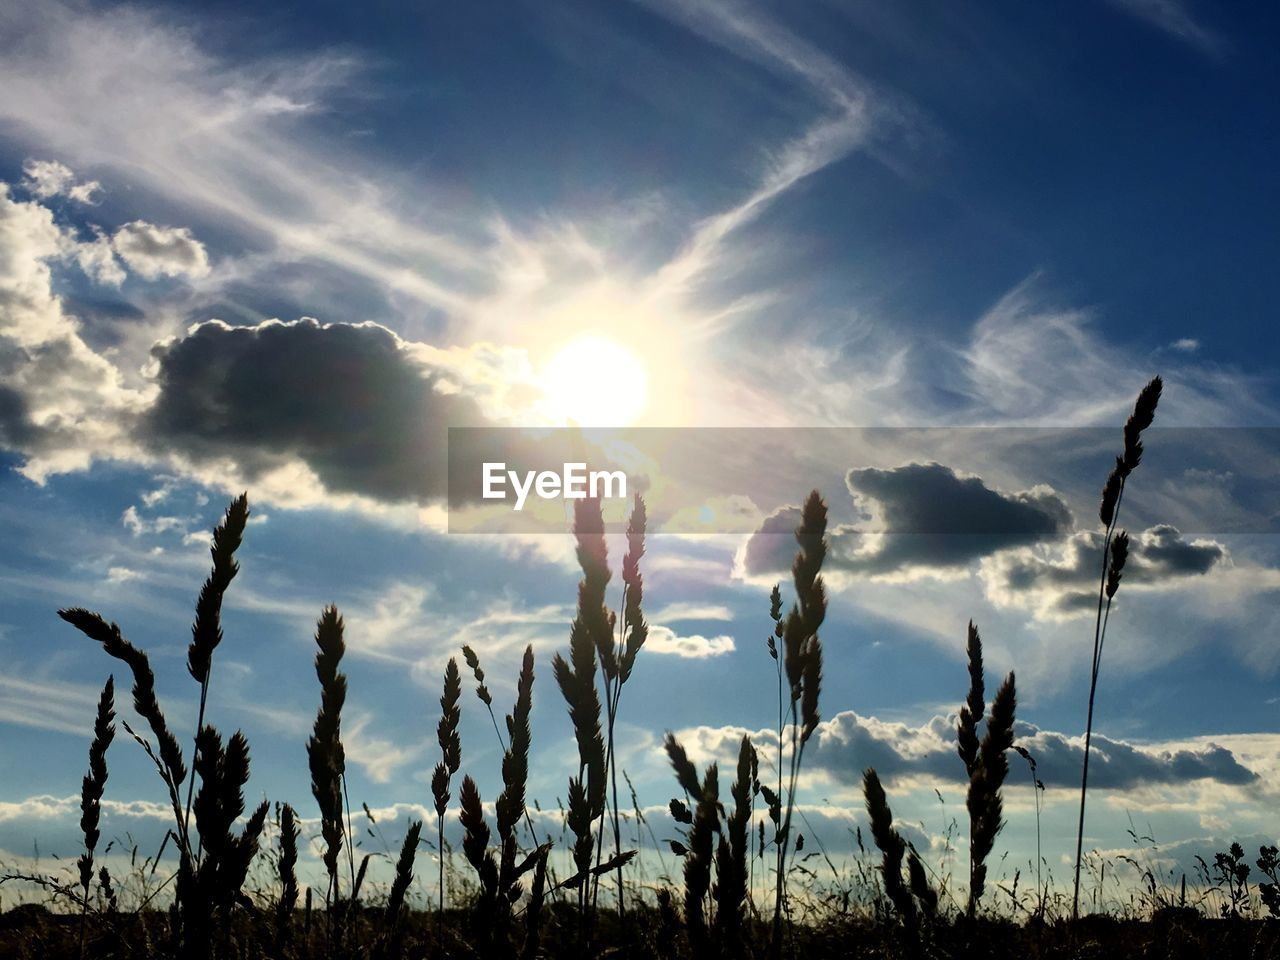 sky, cloud - sky, beauty in nature, sunlight, tranquility, sun, plant, nature, sunbeam, tranquil scene, lens flare, growth, silhouette, scenics - nature, sunset, no people, field, day, non-urban scene, land, bright, streaming